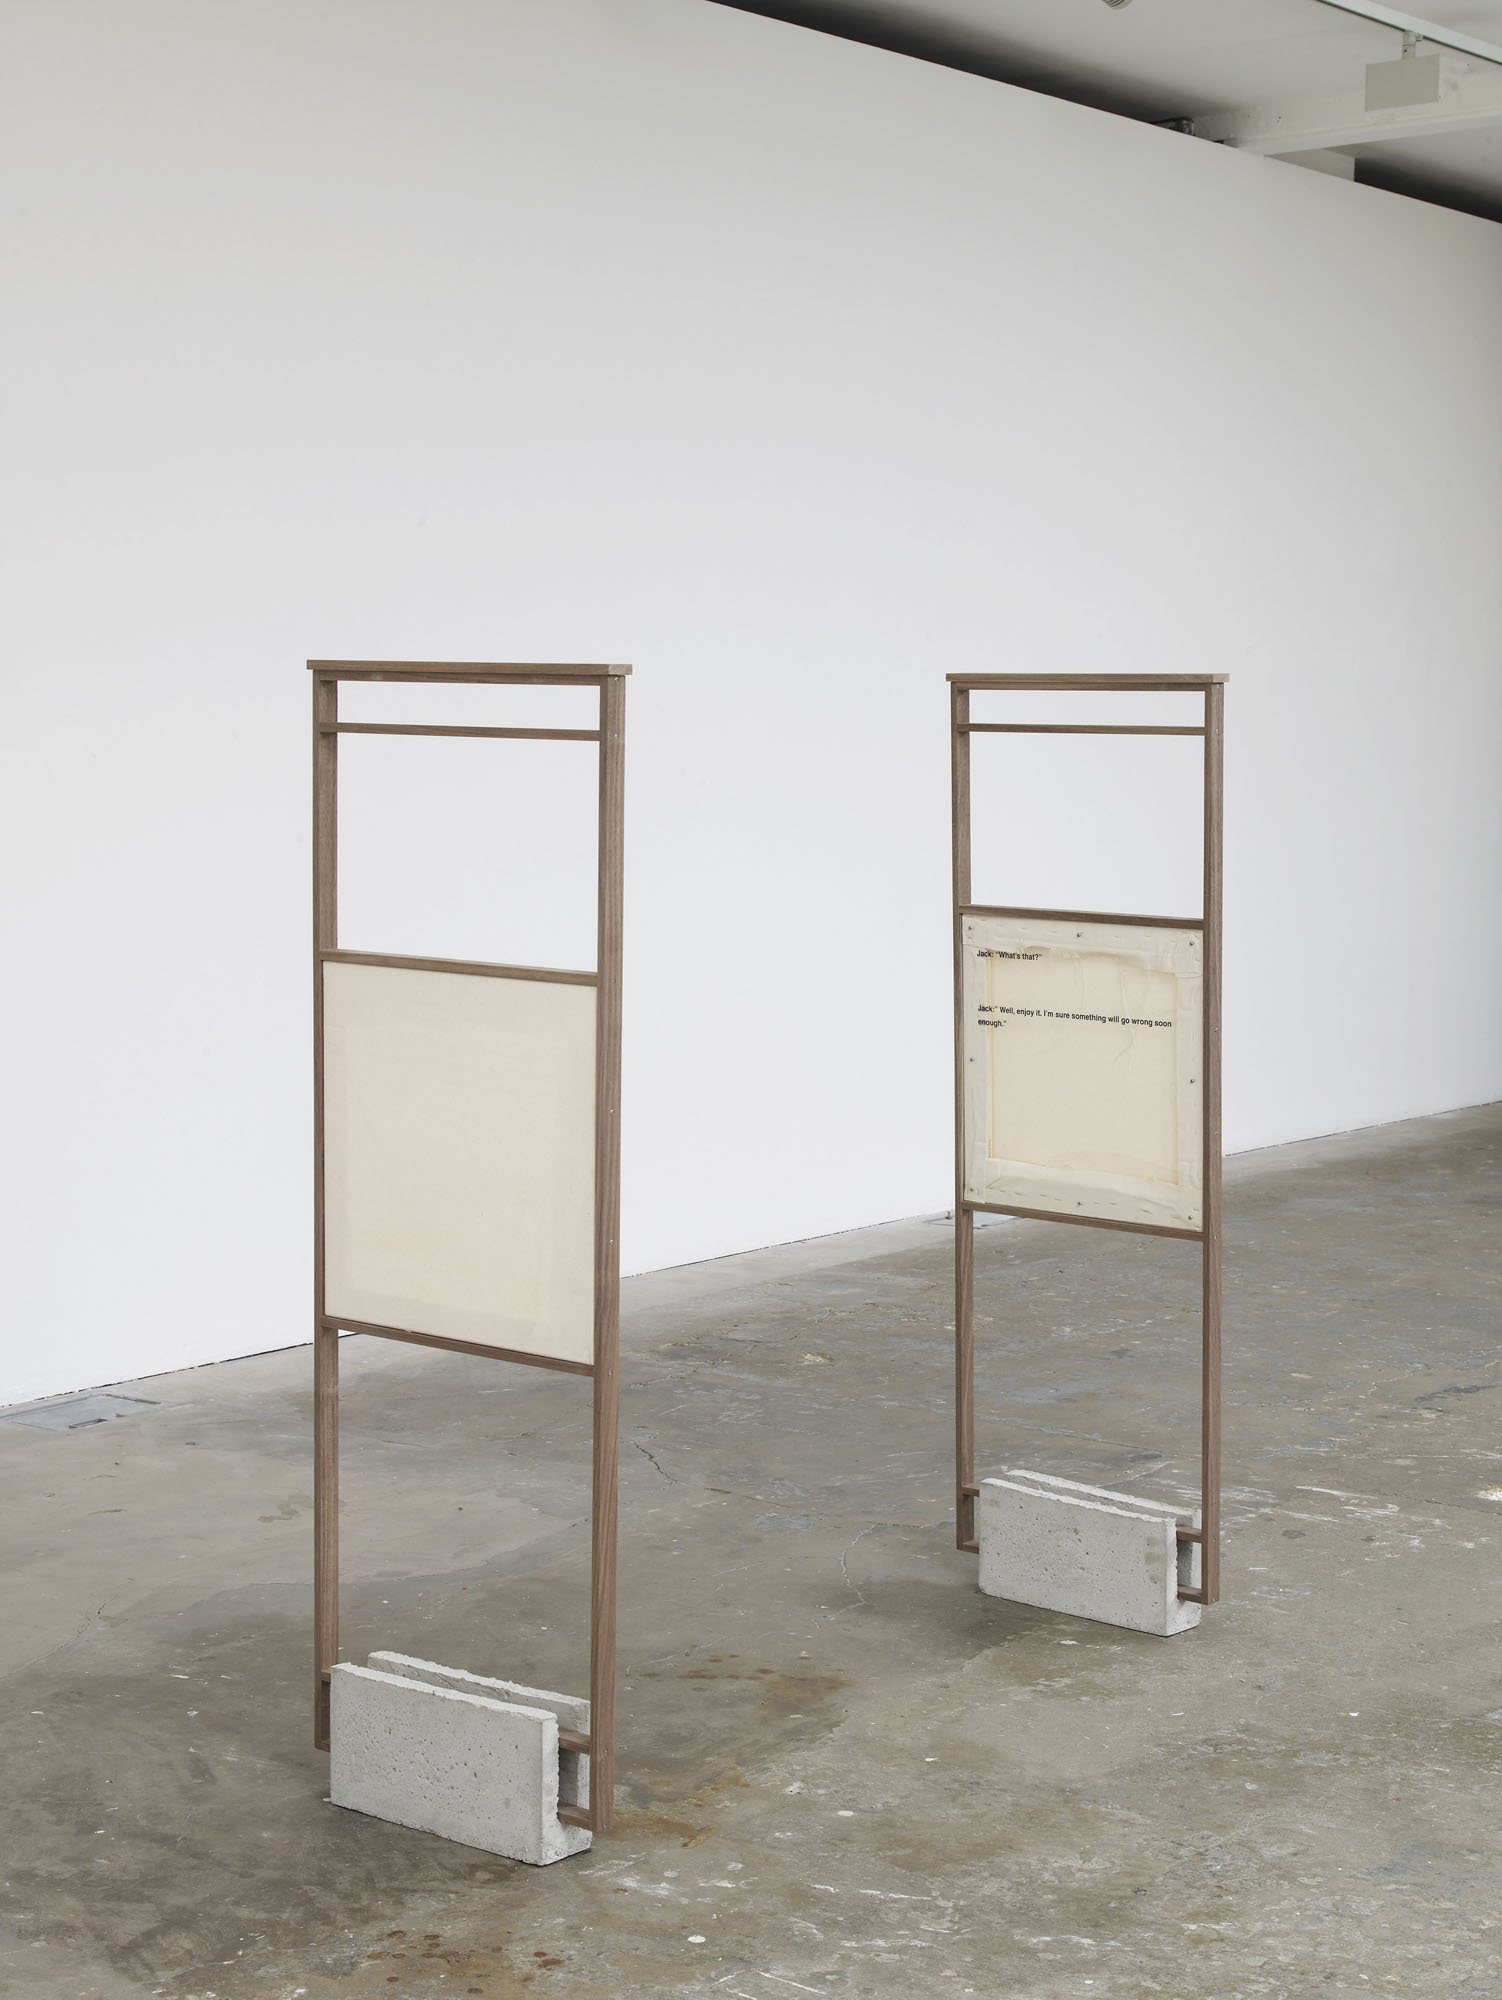 Jack and Kate, 2016  Walnut frame, cement plinth, engraved metal label, UV-print on acrylic glass, canvas on stretcher 140 x 46 x 9 cm 55 1/8 x 18 1/8 x 3 1/2 ins. 2 , Philipp Timischl